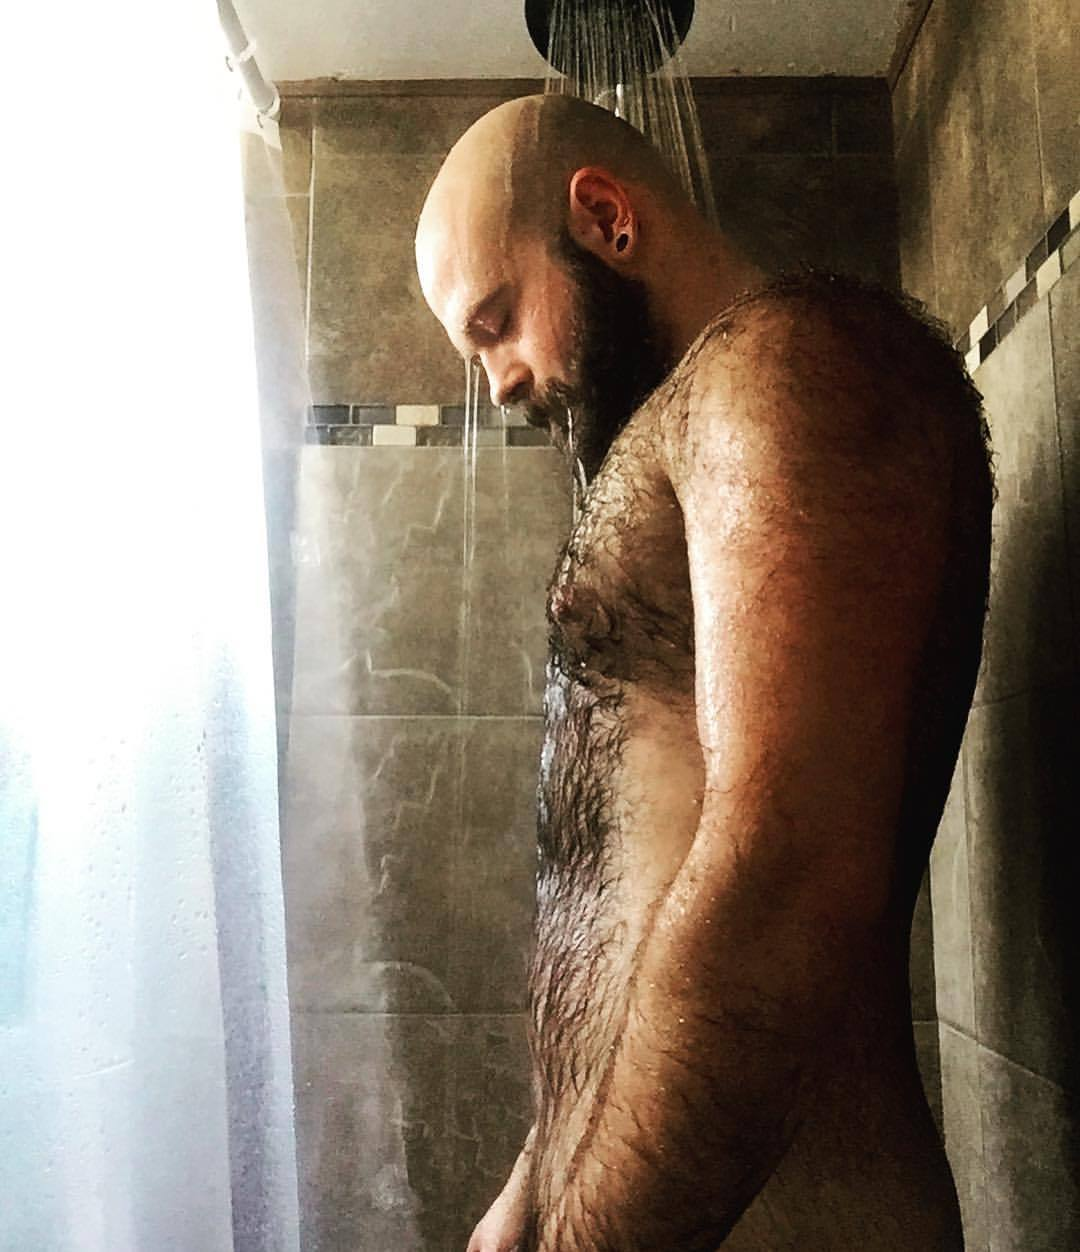 sexy hairy naked man in the shower